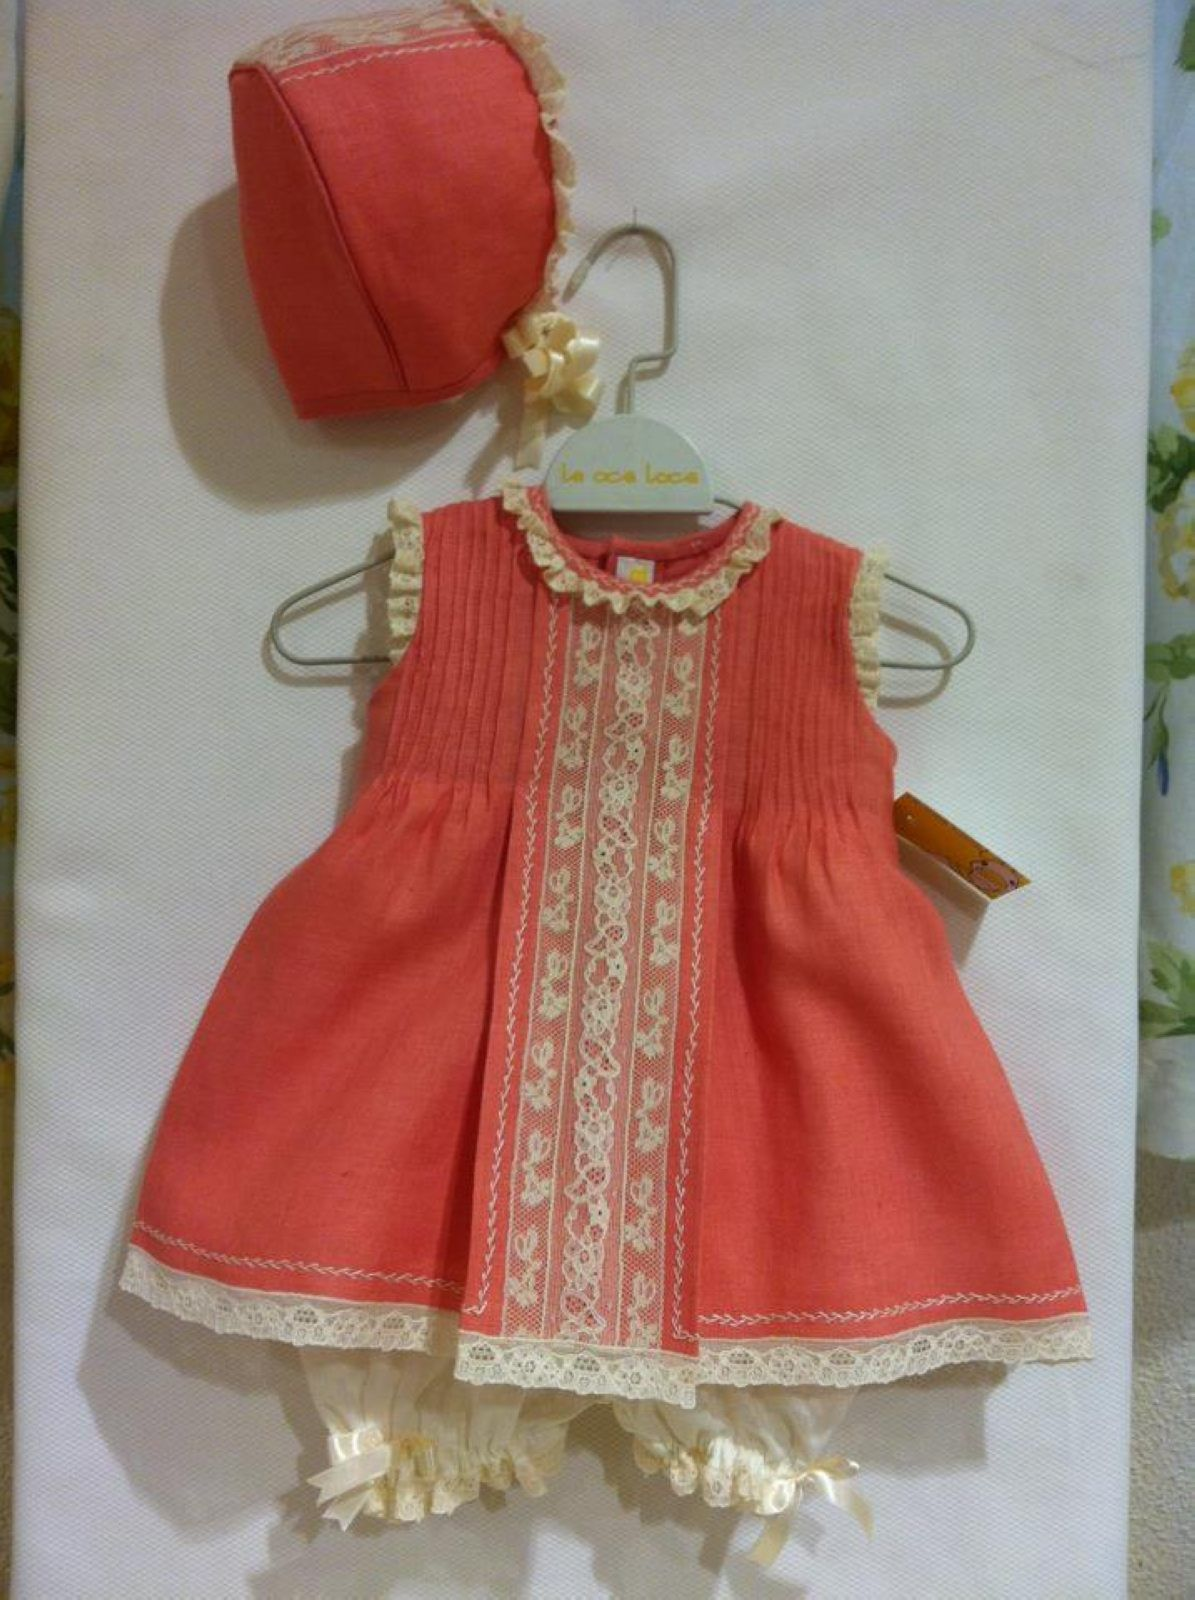 Sweet dress with pintucks and lace. The contrast is nice!